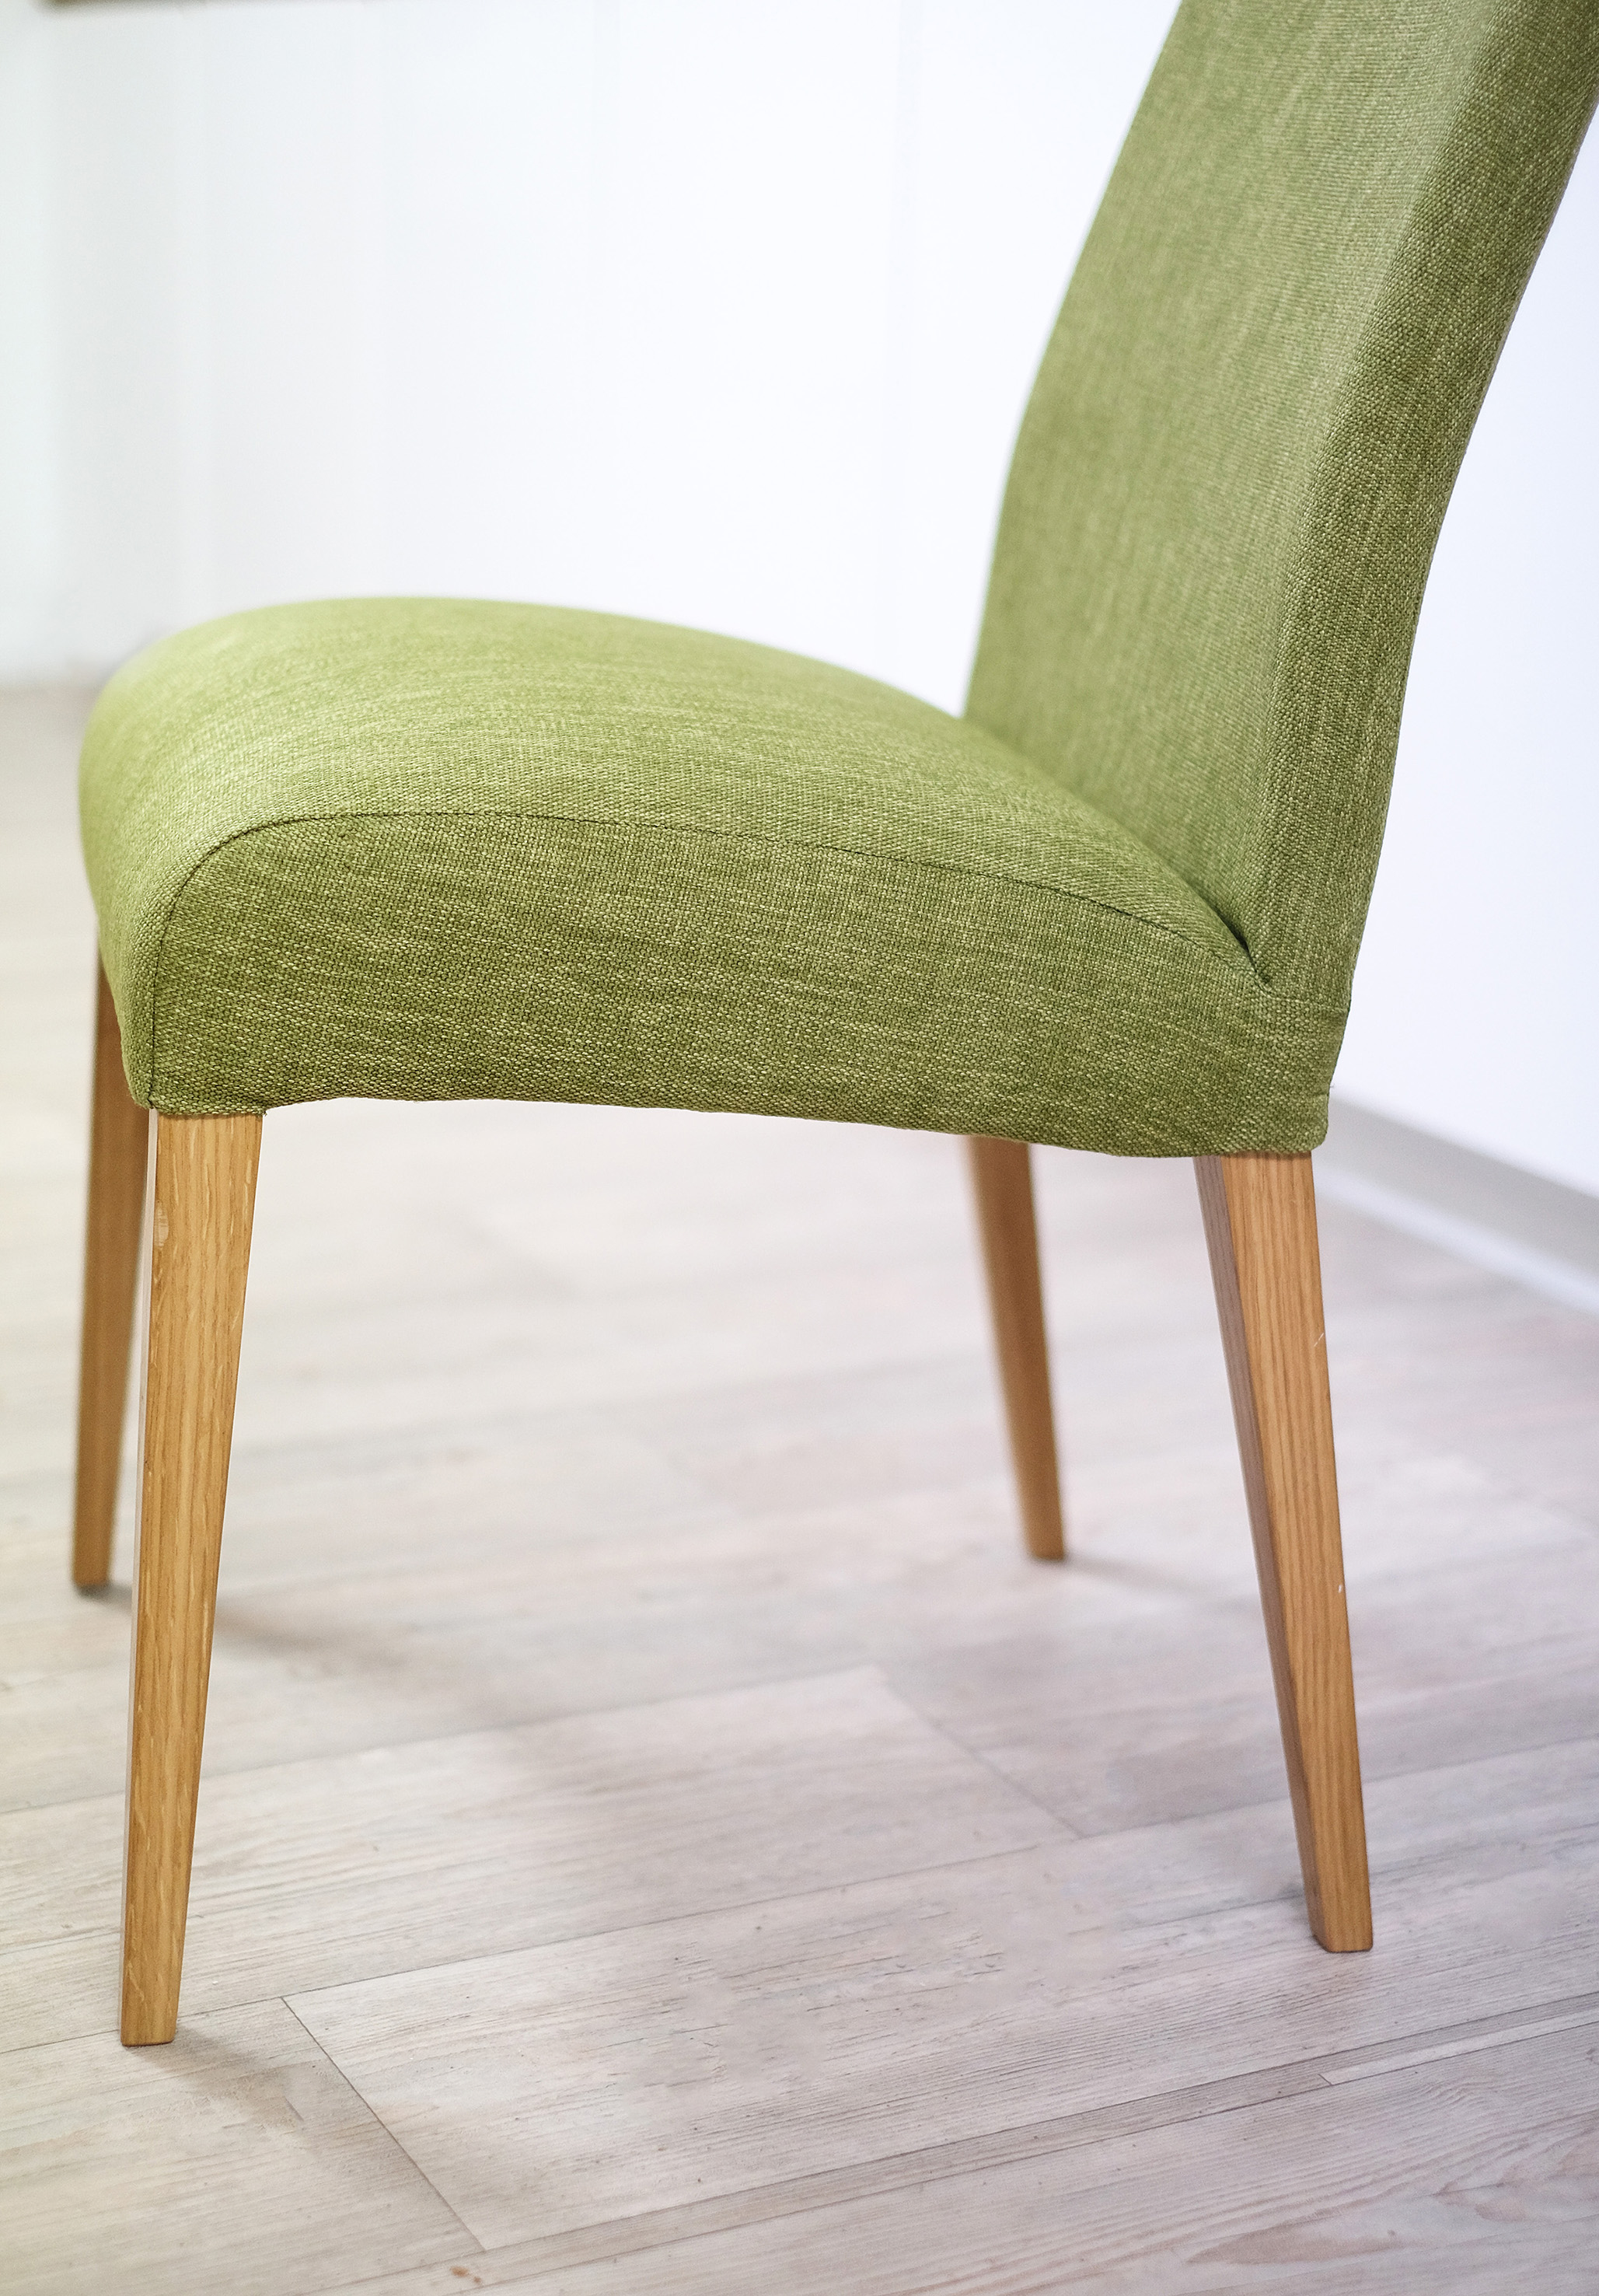 The Most Comfortable Dining Chair Finer FinishersFiner Finishers